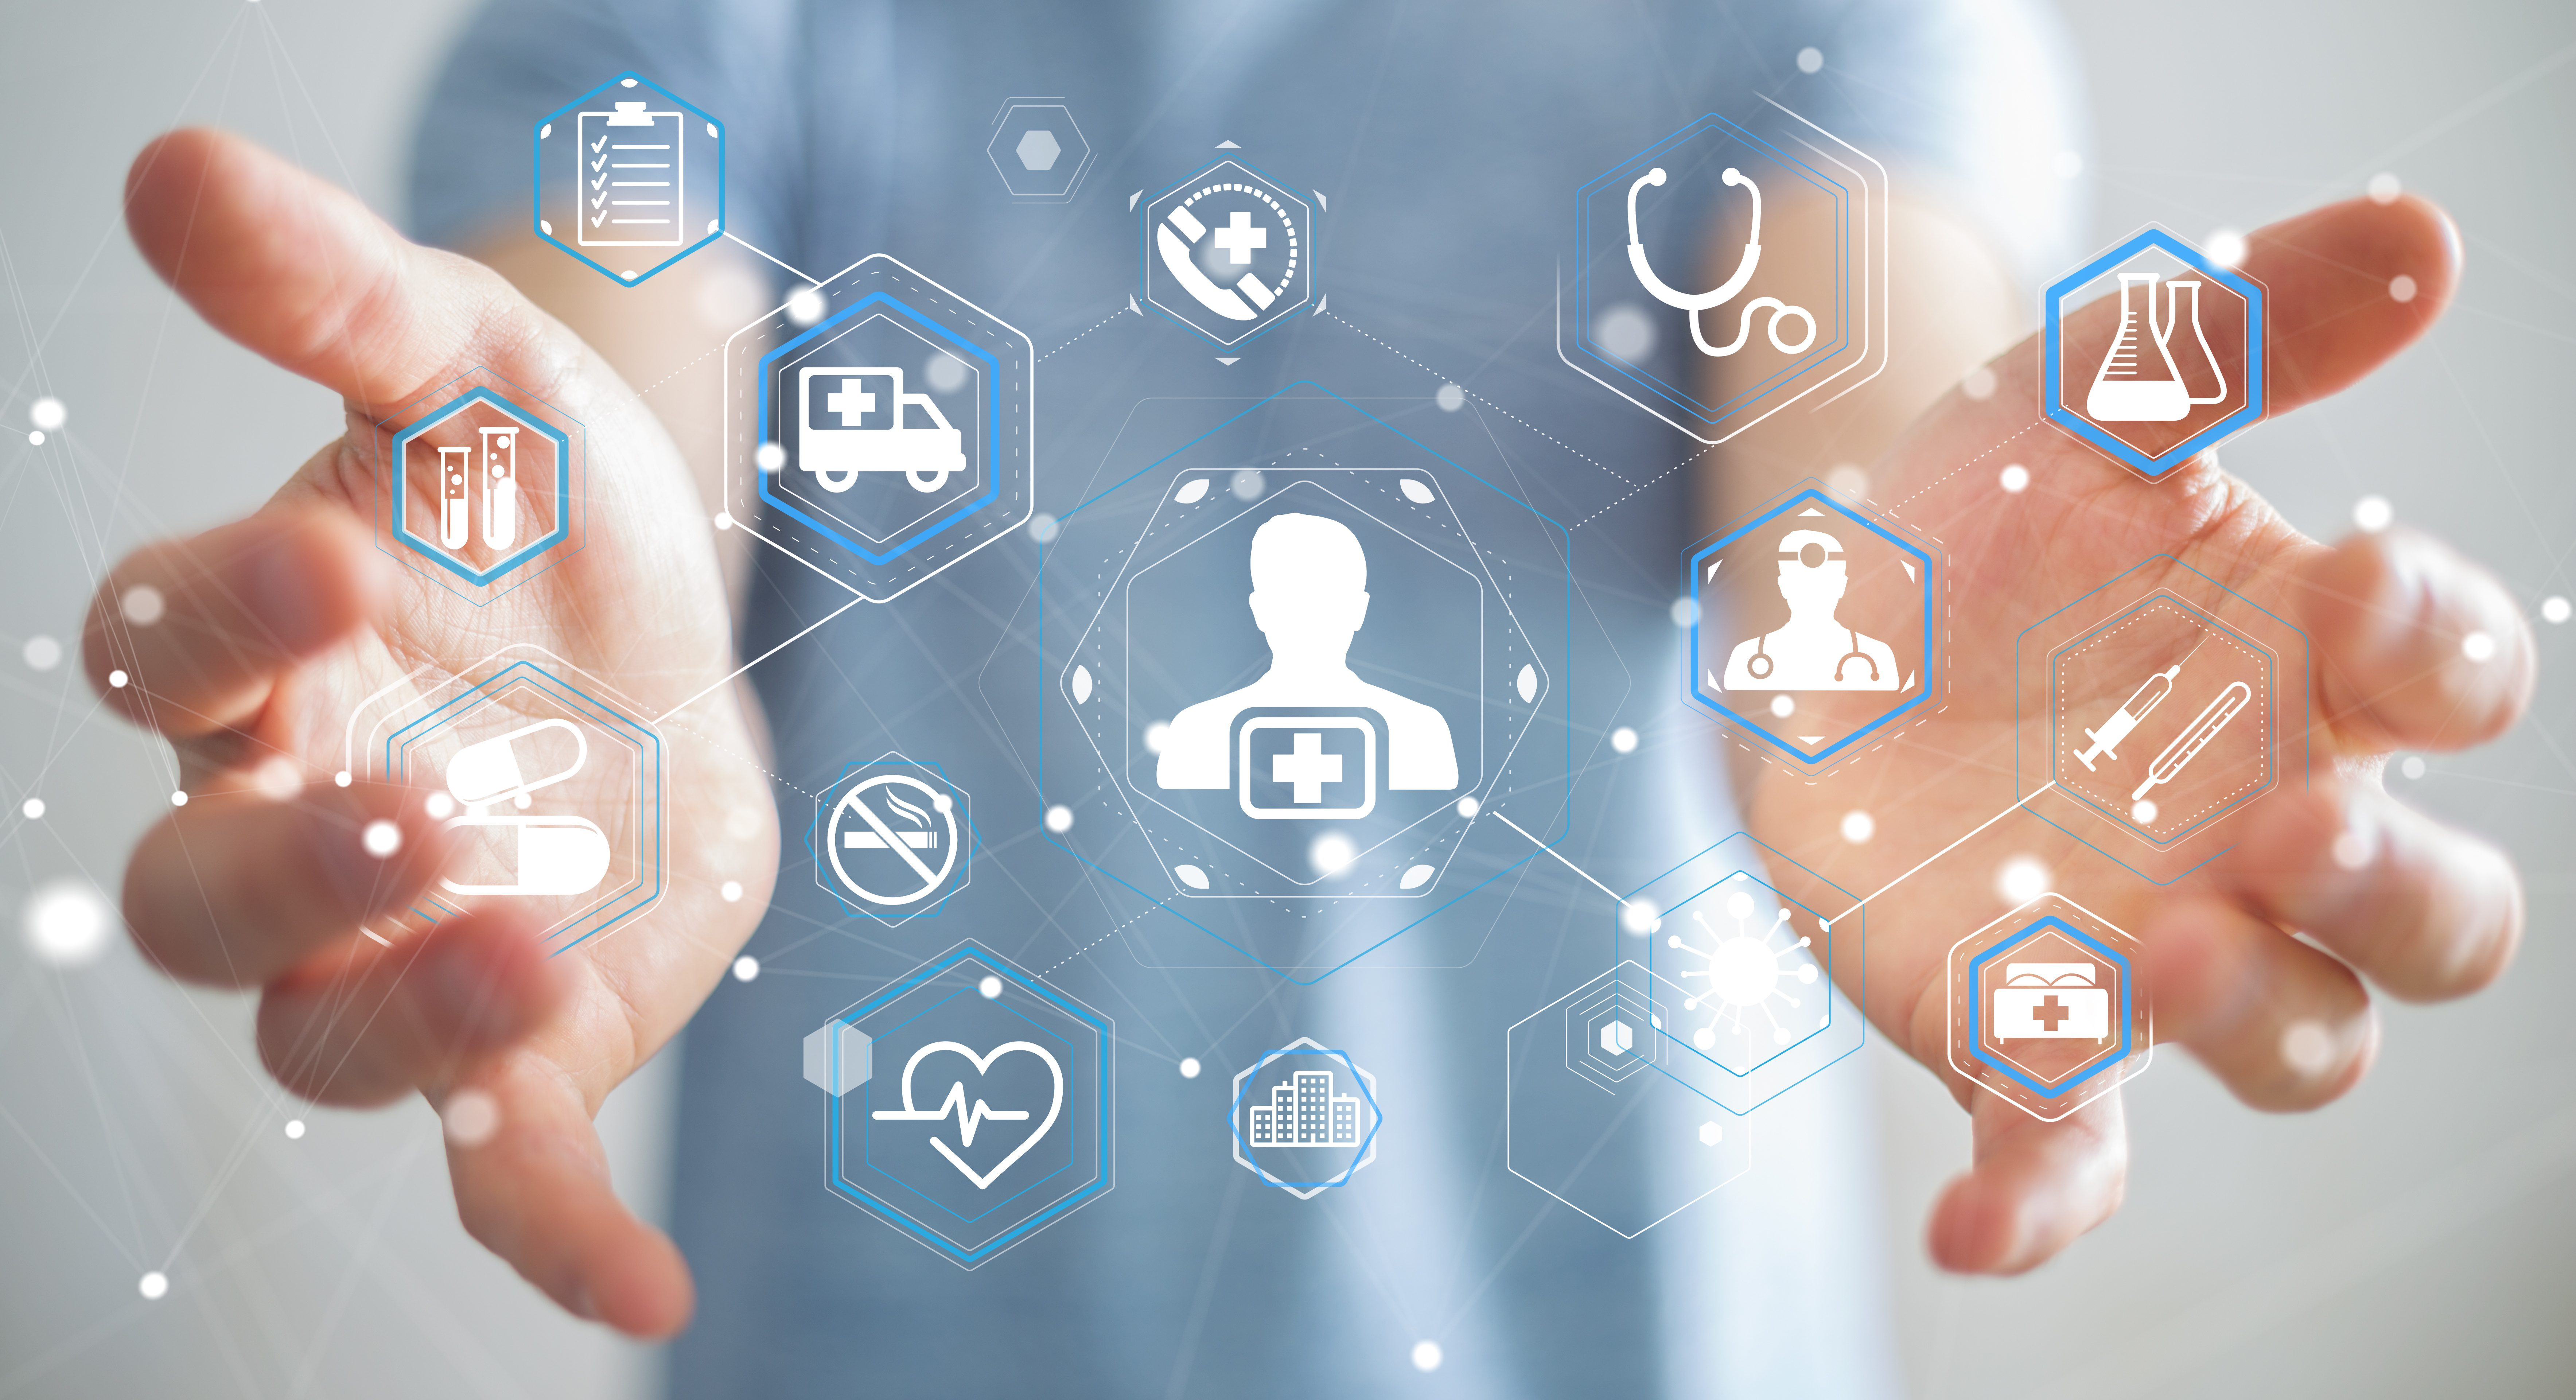 HHS Declares Limited Waiver of HIPAA Privacy Rule and Clarifies Rules on Disclosures in Emergency Situations